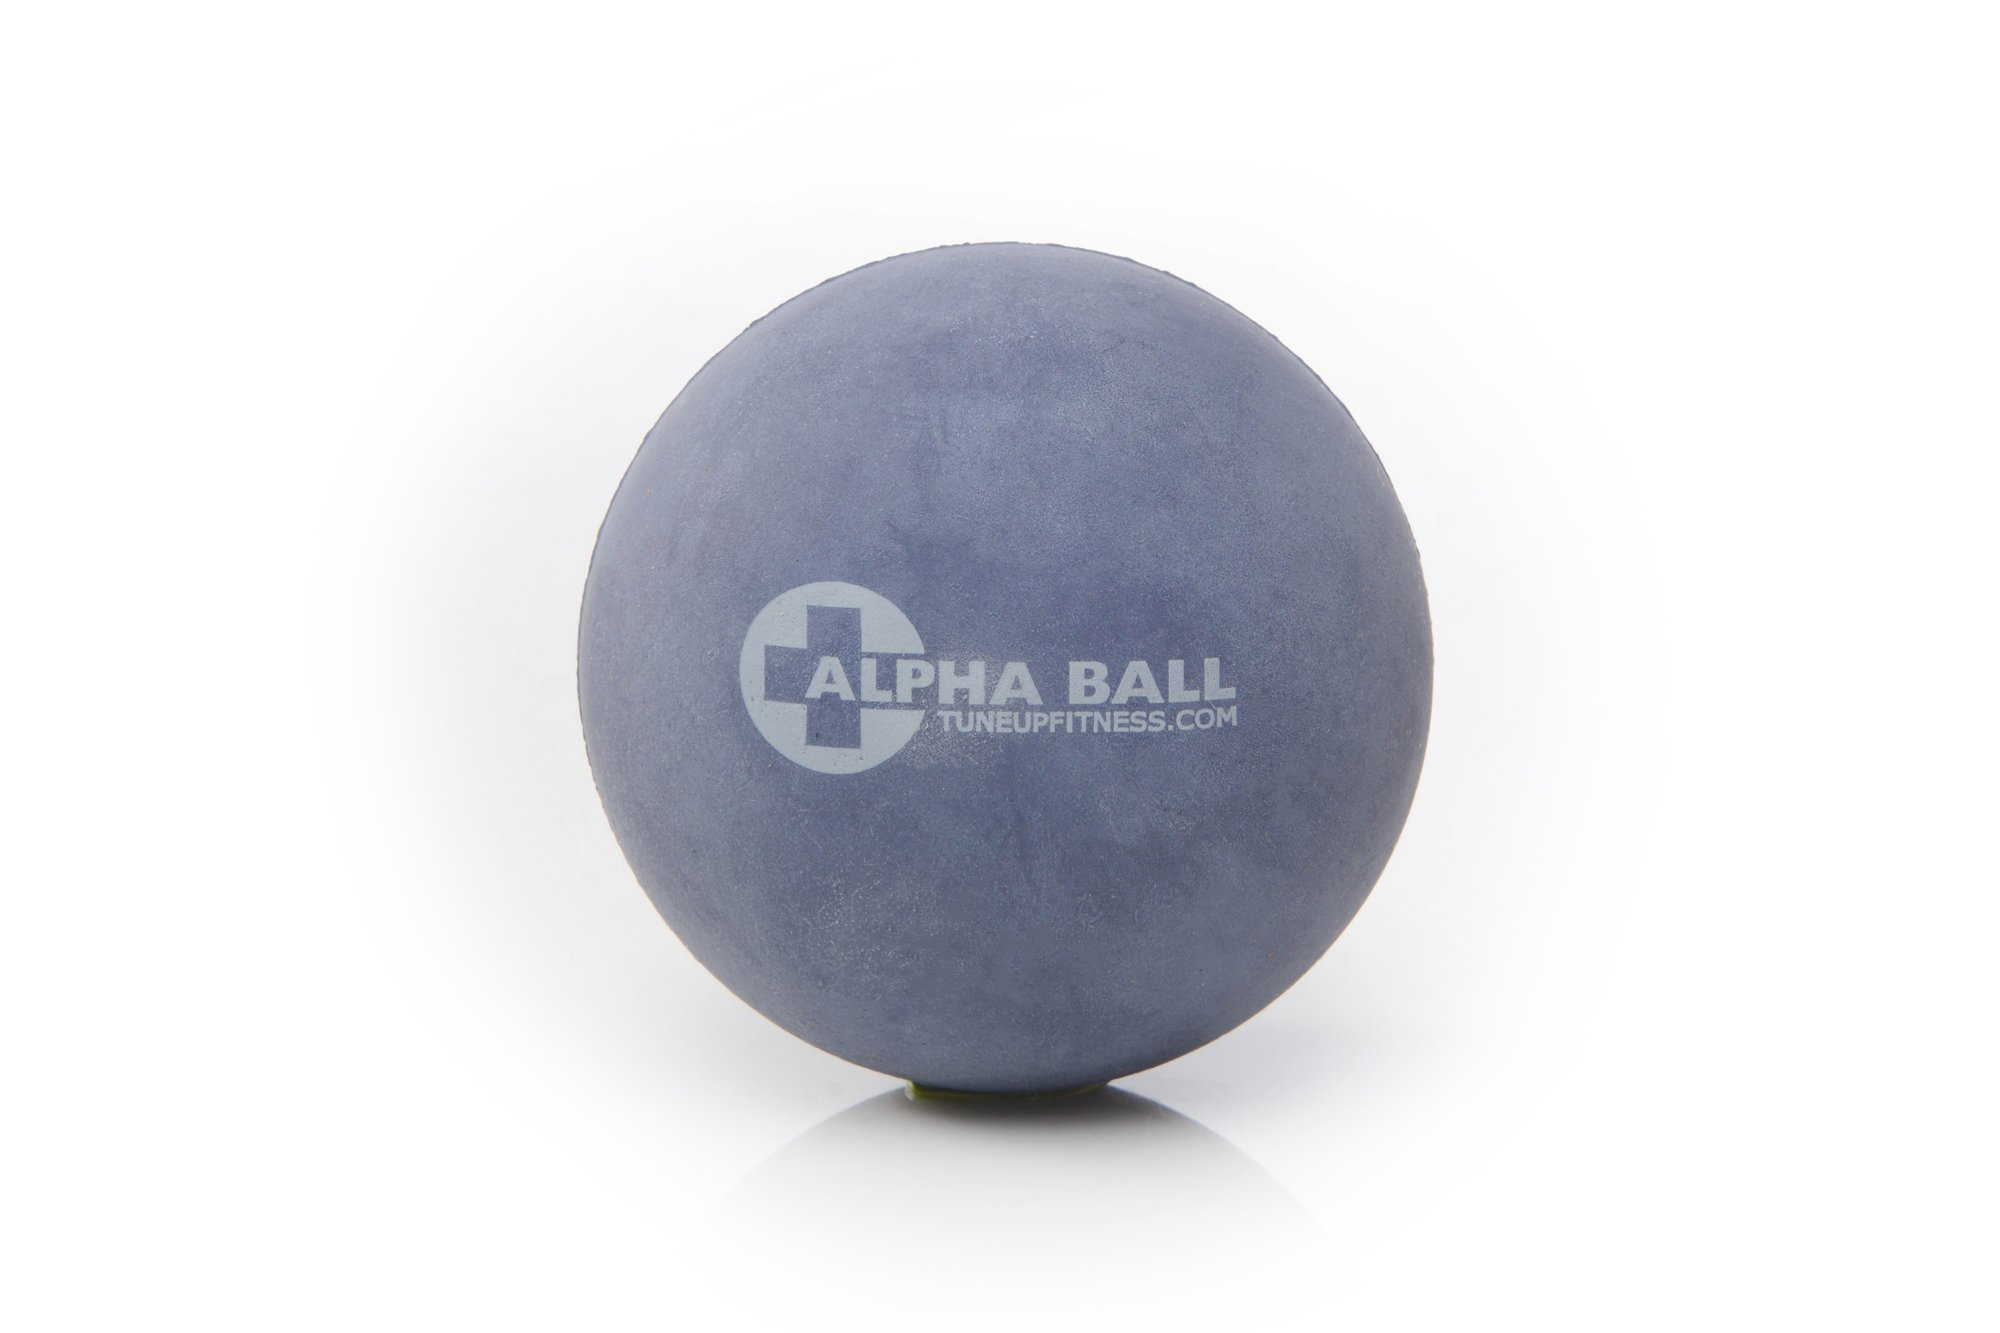 Yoga Tune up Alpha Ball by Jill Miller